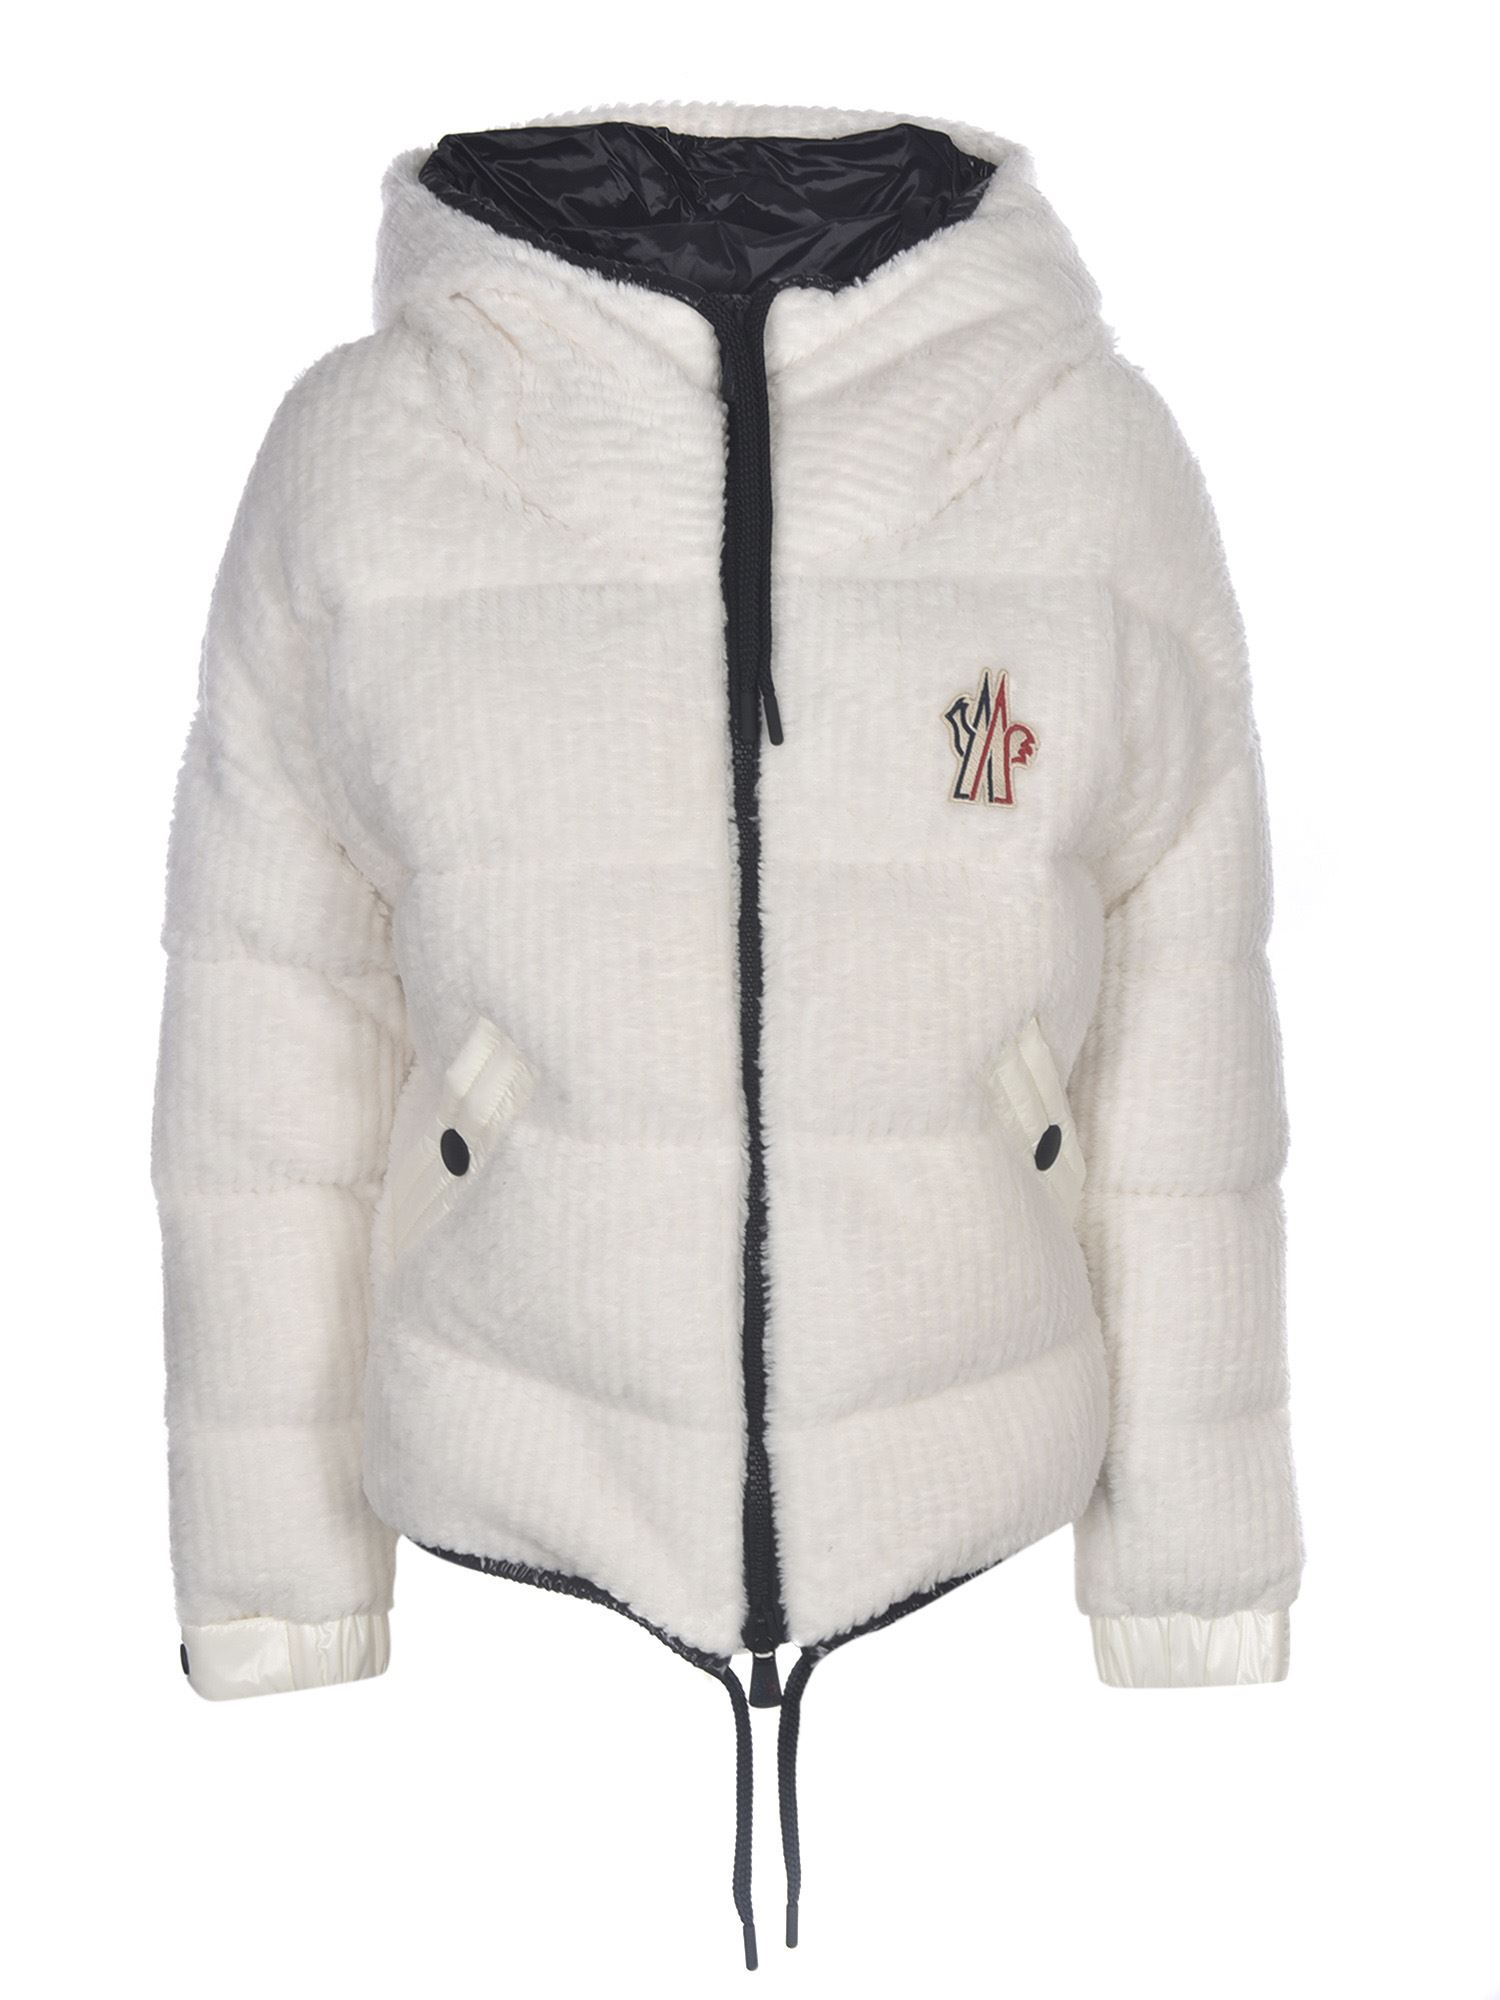 MONCLER GRENOBLE TEDDY EFFECT CARDIGAN IN WHITE